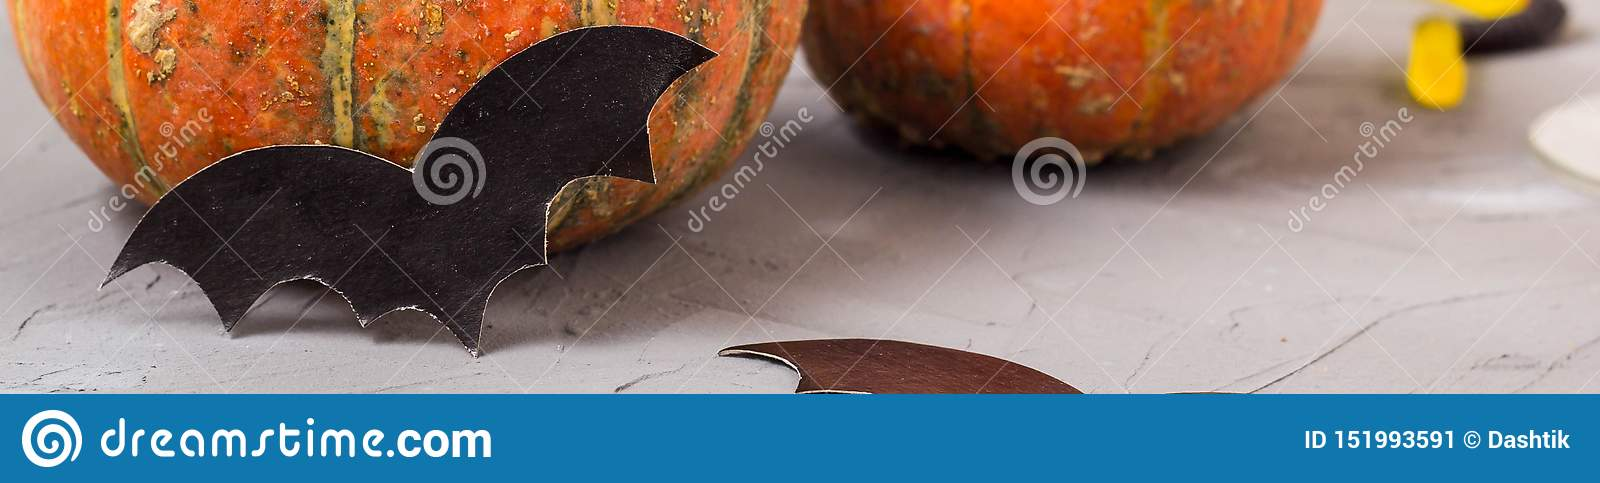 Banner of orange pumpkin and paper bats on white table, halloween concept